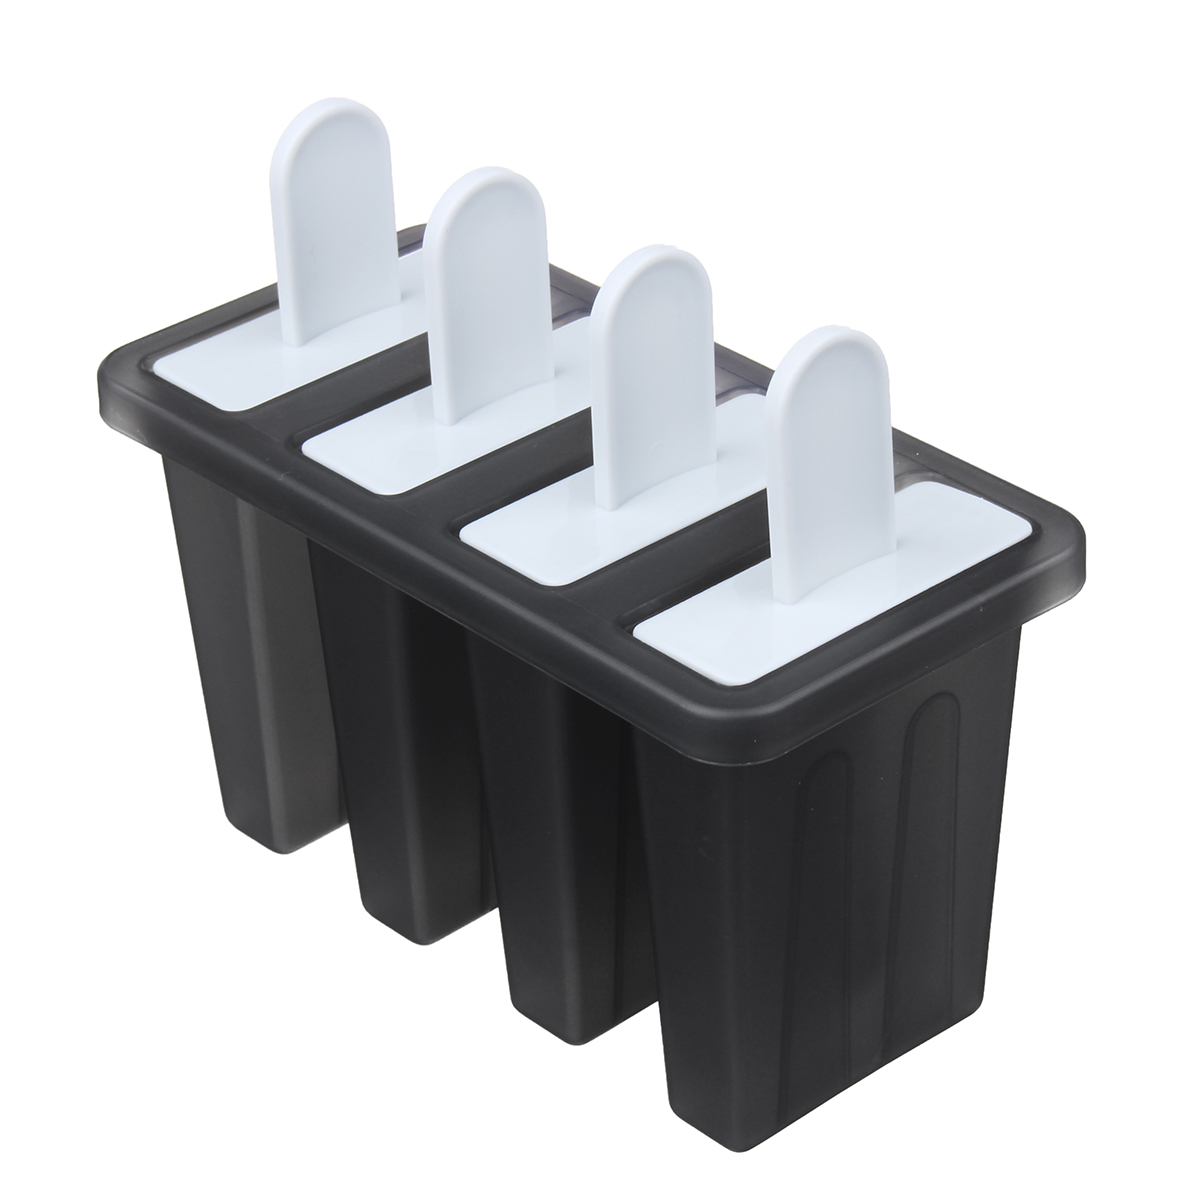 4 Cavity Popsicle Frozen Mould PP Material Cake Baking Mould DIY Ice Cream Mold Decorations